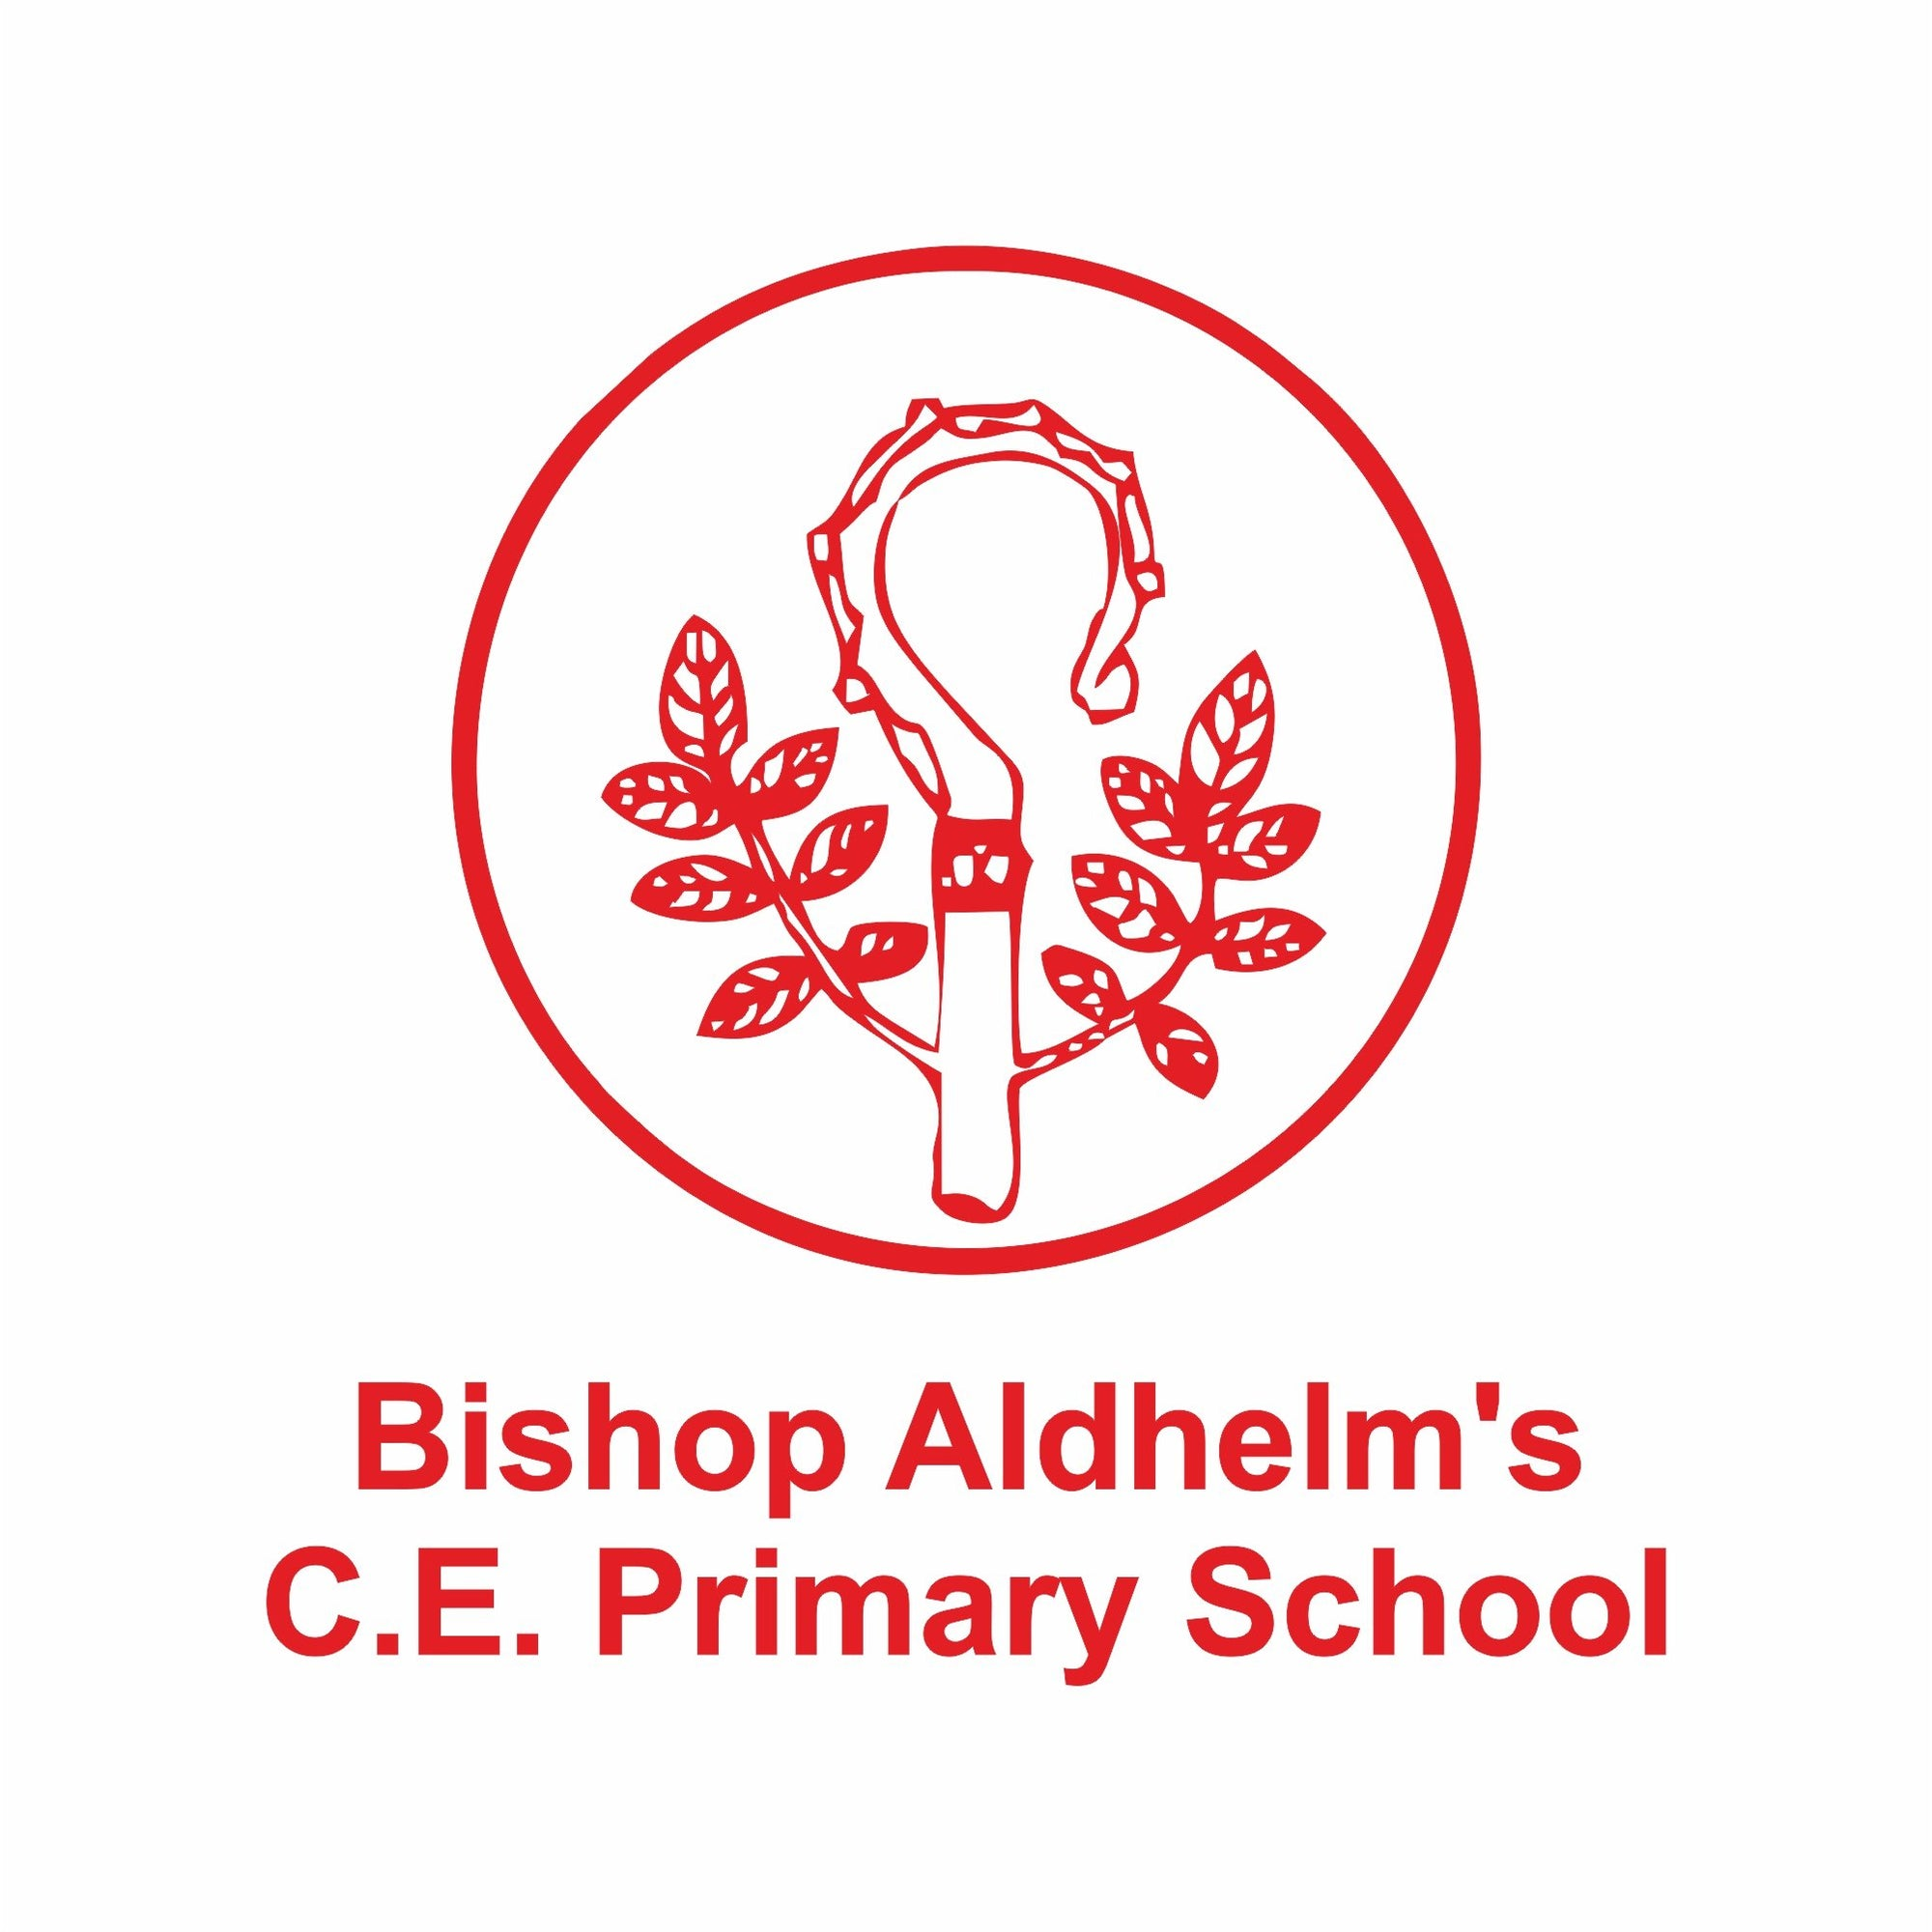 Bishop Aldhelm's Primary School